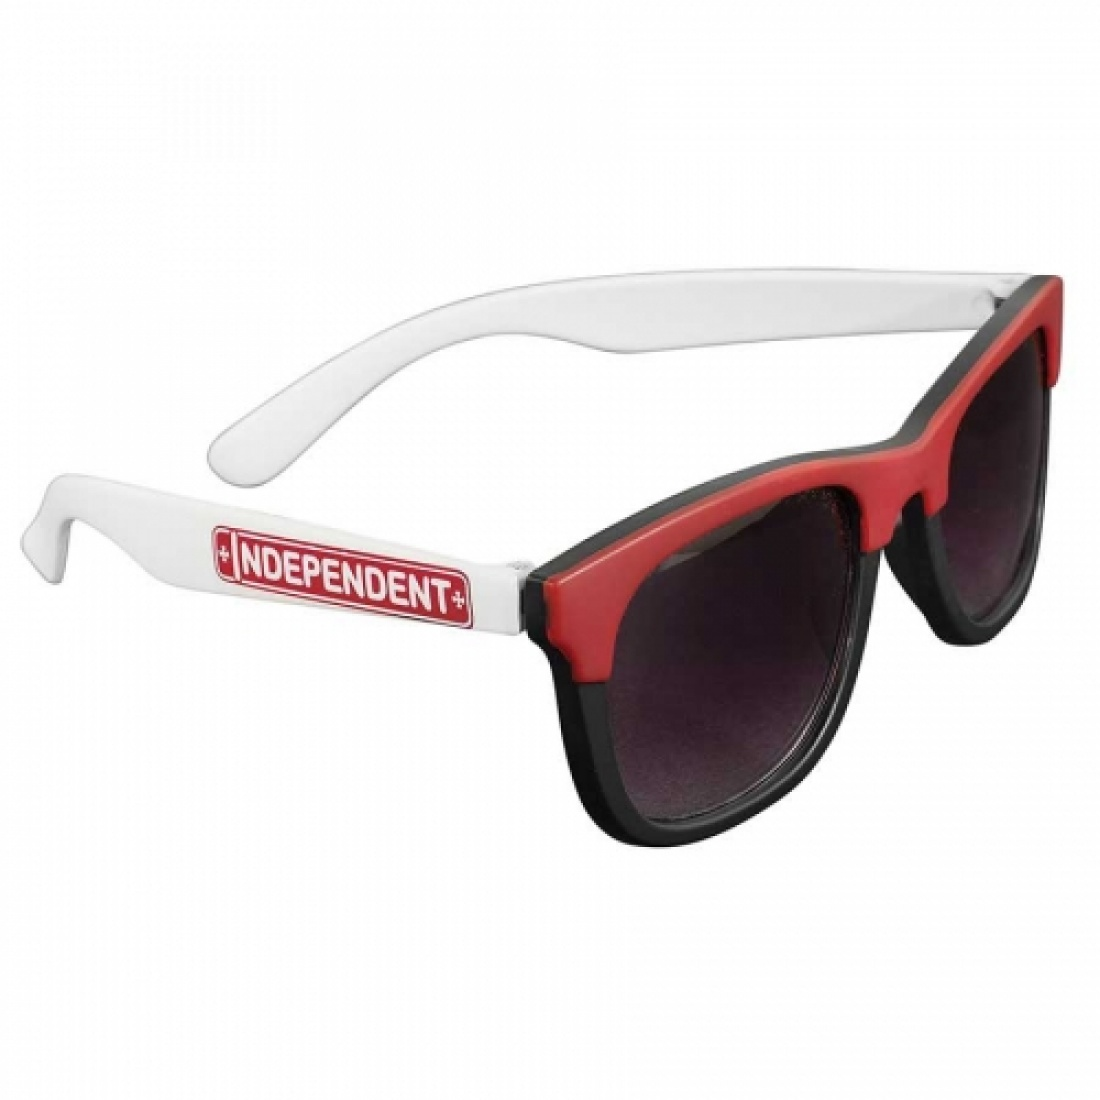 IND-Lost Boys Square Sunglasses Blk/Red/Wht OS Unisex